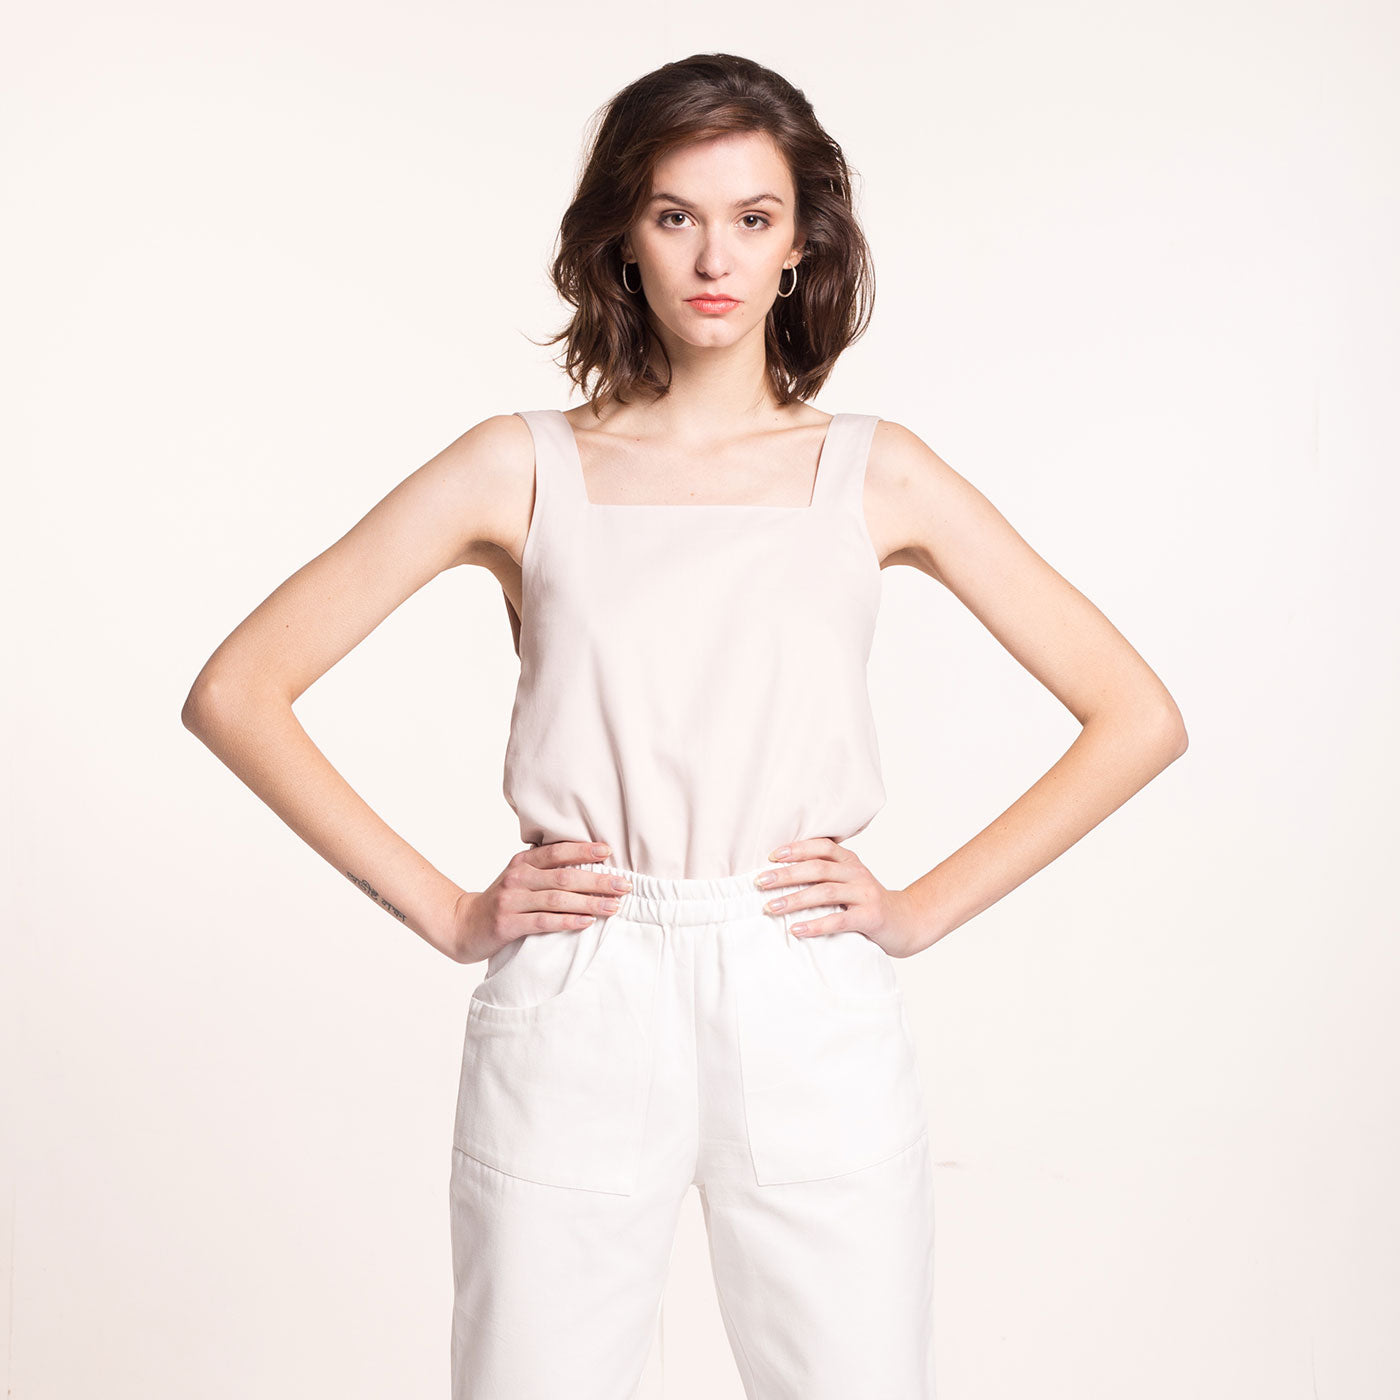 The model wears a rose-beige, sustainable, organic cotton, wide straps top, front view.